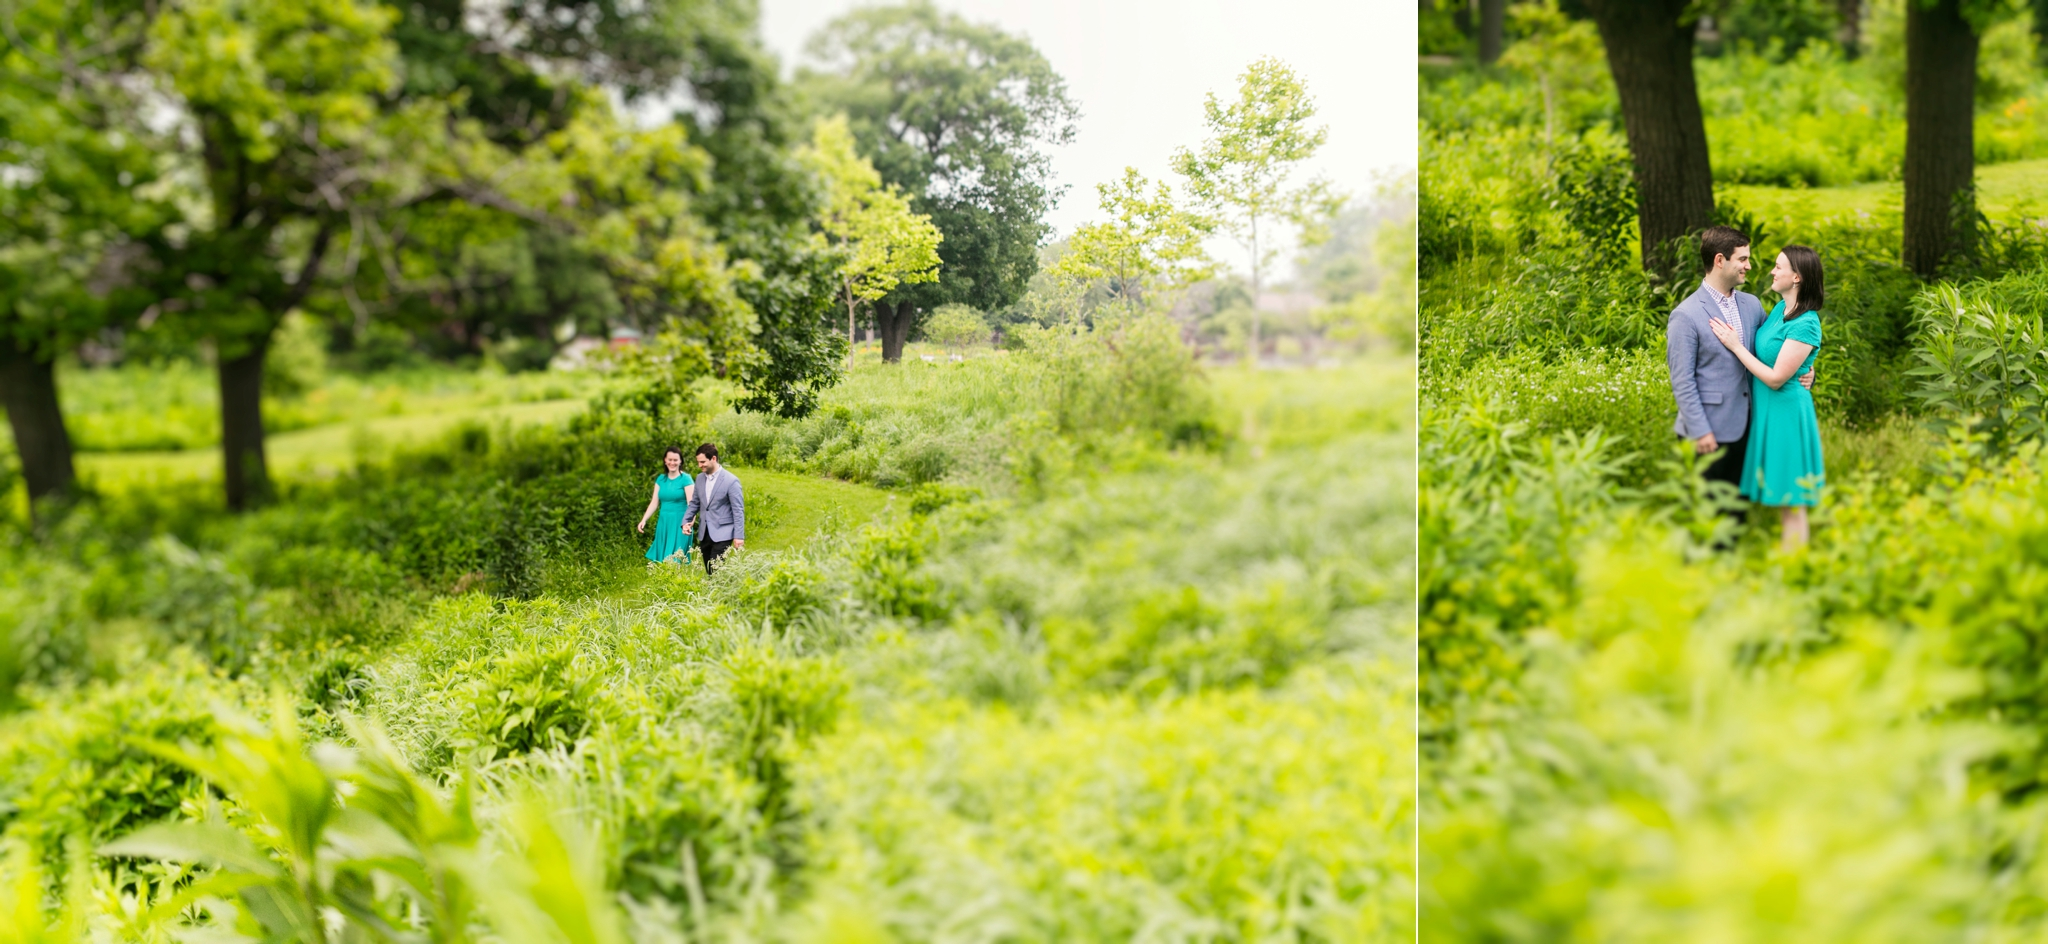 Lincoln_Park_Engagement_Photography-006.jpg